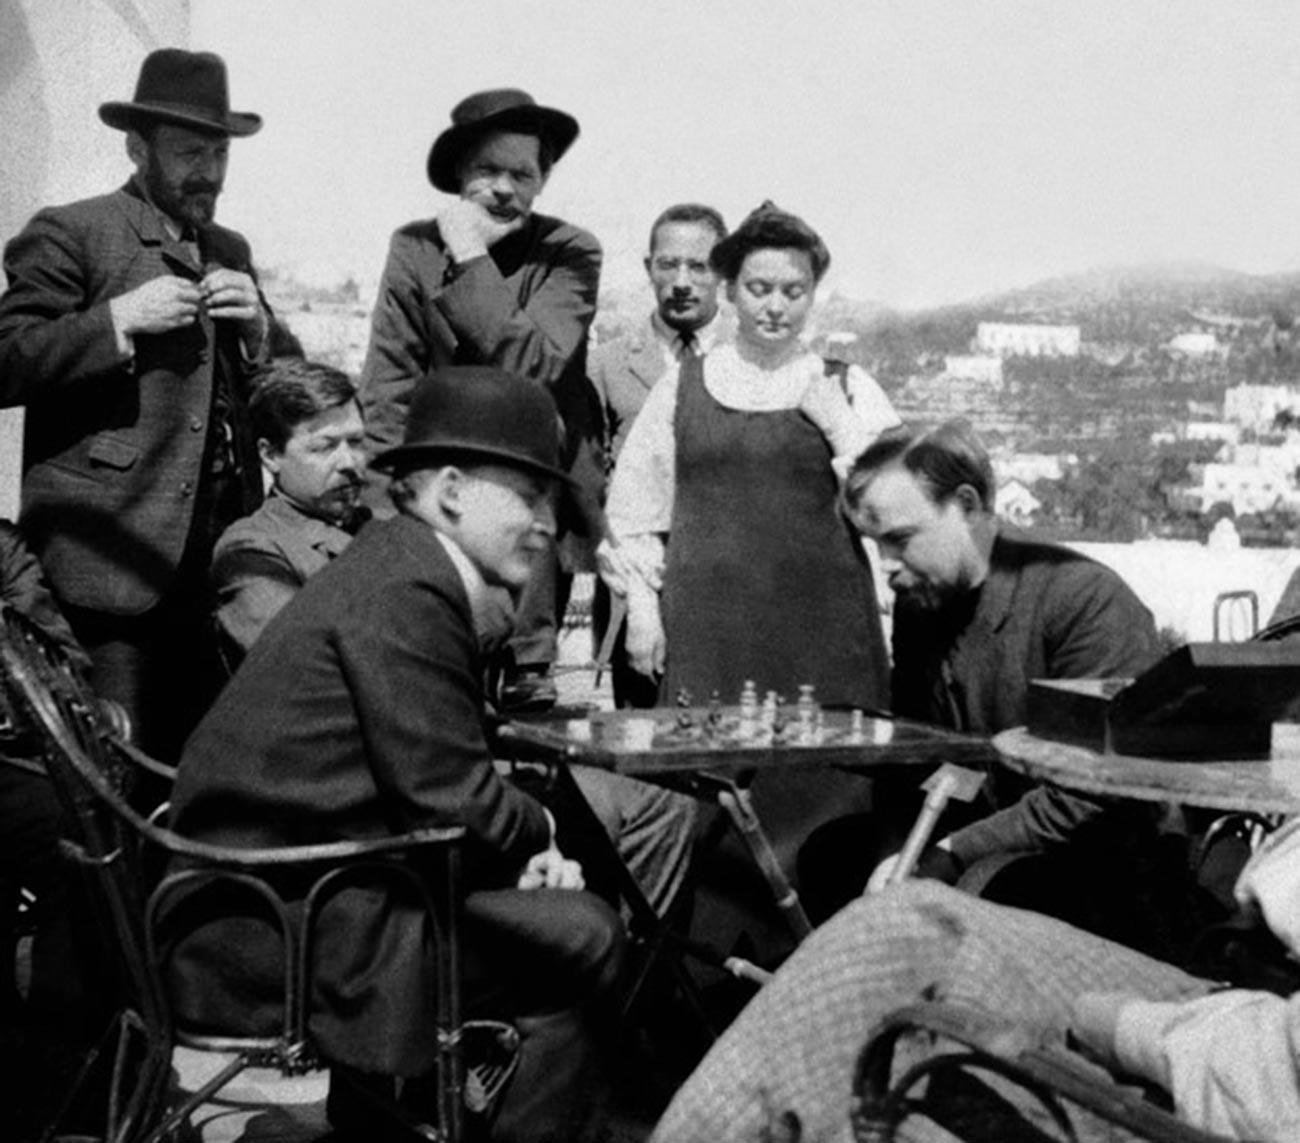 Lenin (second from left) at the terrace of Maxim Gorky's villa on Capri, Italy